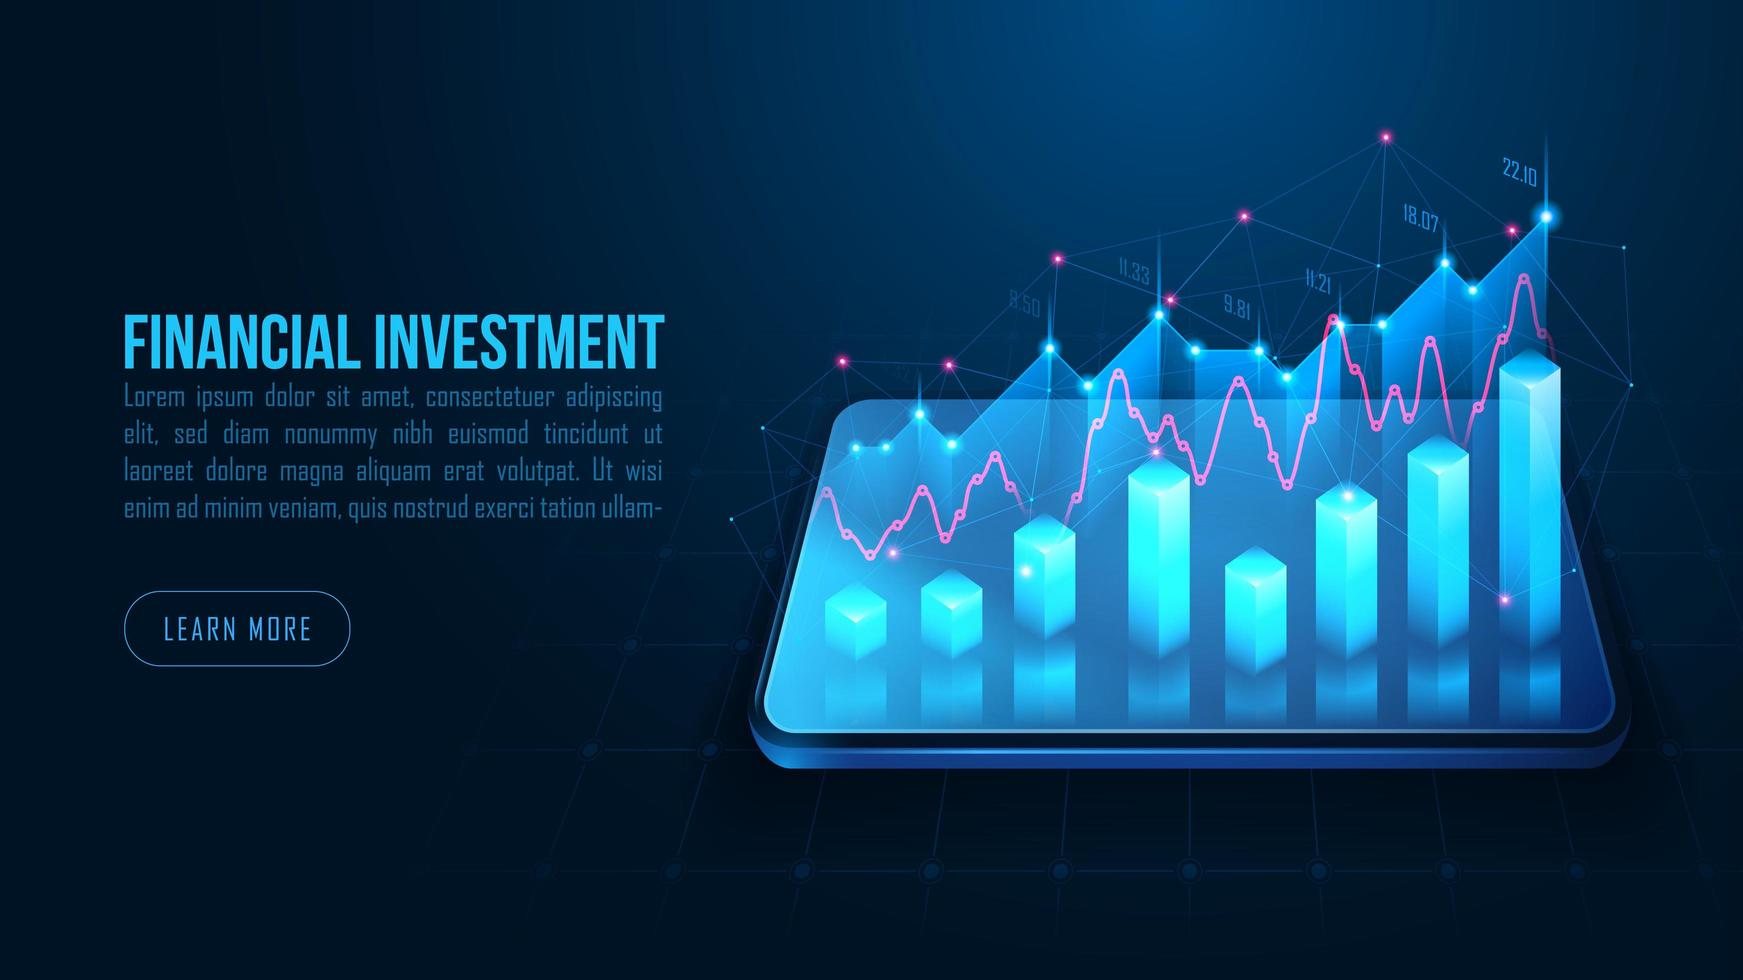 Isometric stock or forex trading graph on smartphone vector